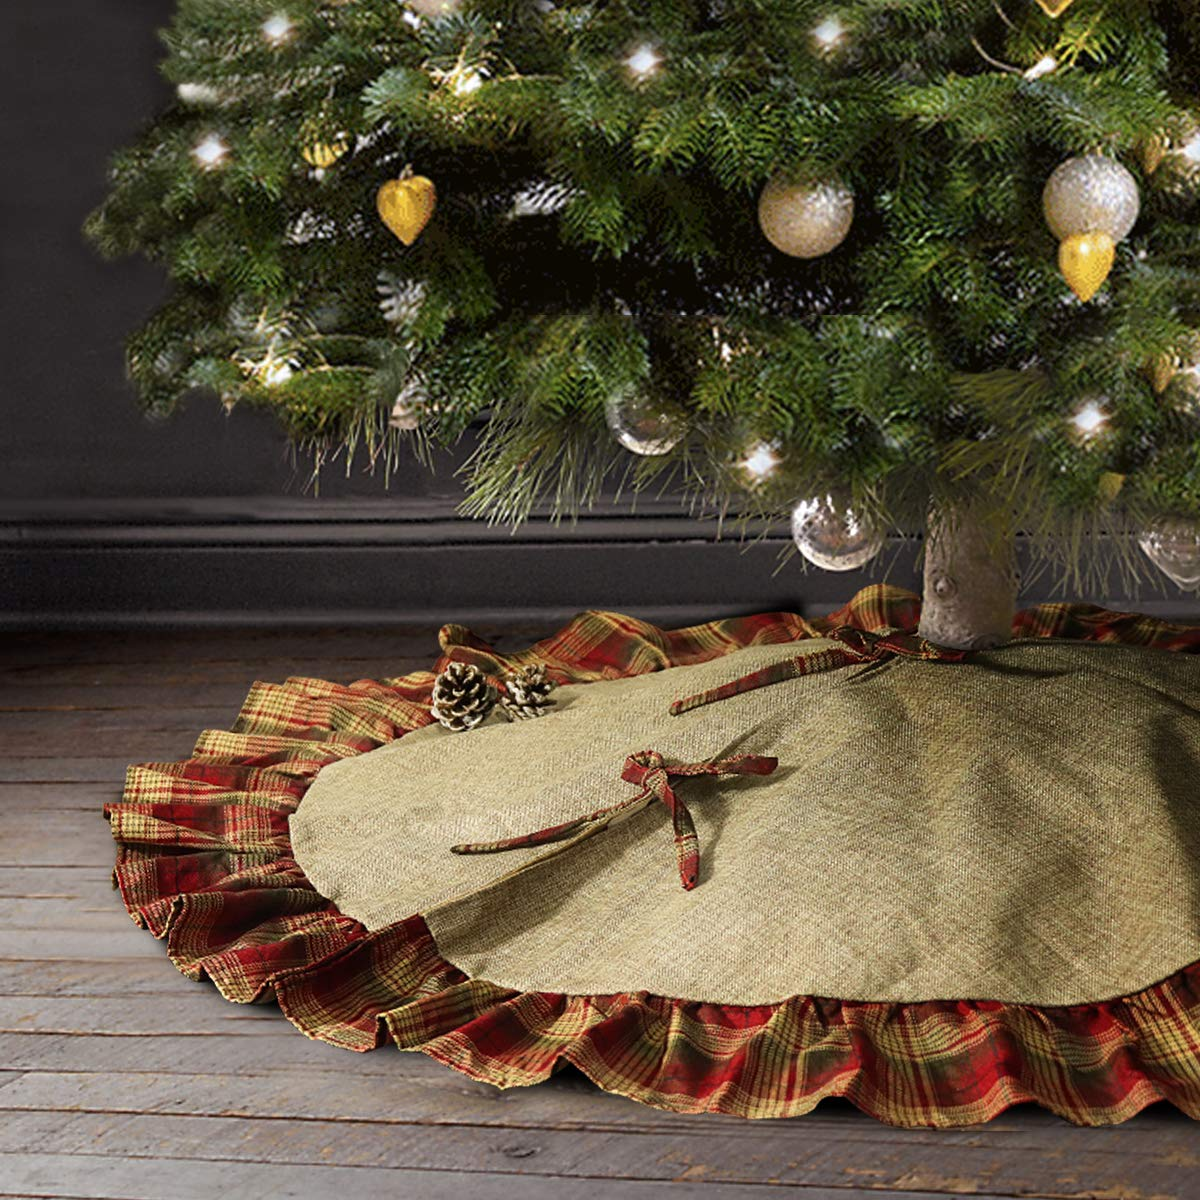 uk availability a3a66 ceac3 Ivenf Christmas Tree Skirt, 48 inches Large Burlap with Plaid Ruffle Trim  Skirt, Rustic Xmas Tree Holiday Decorations